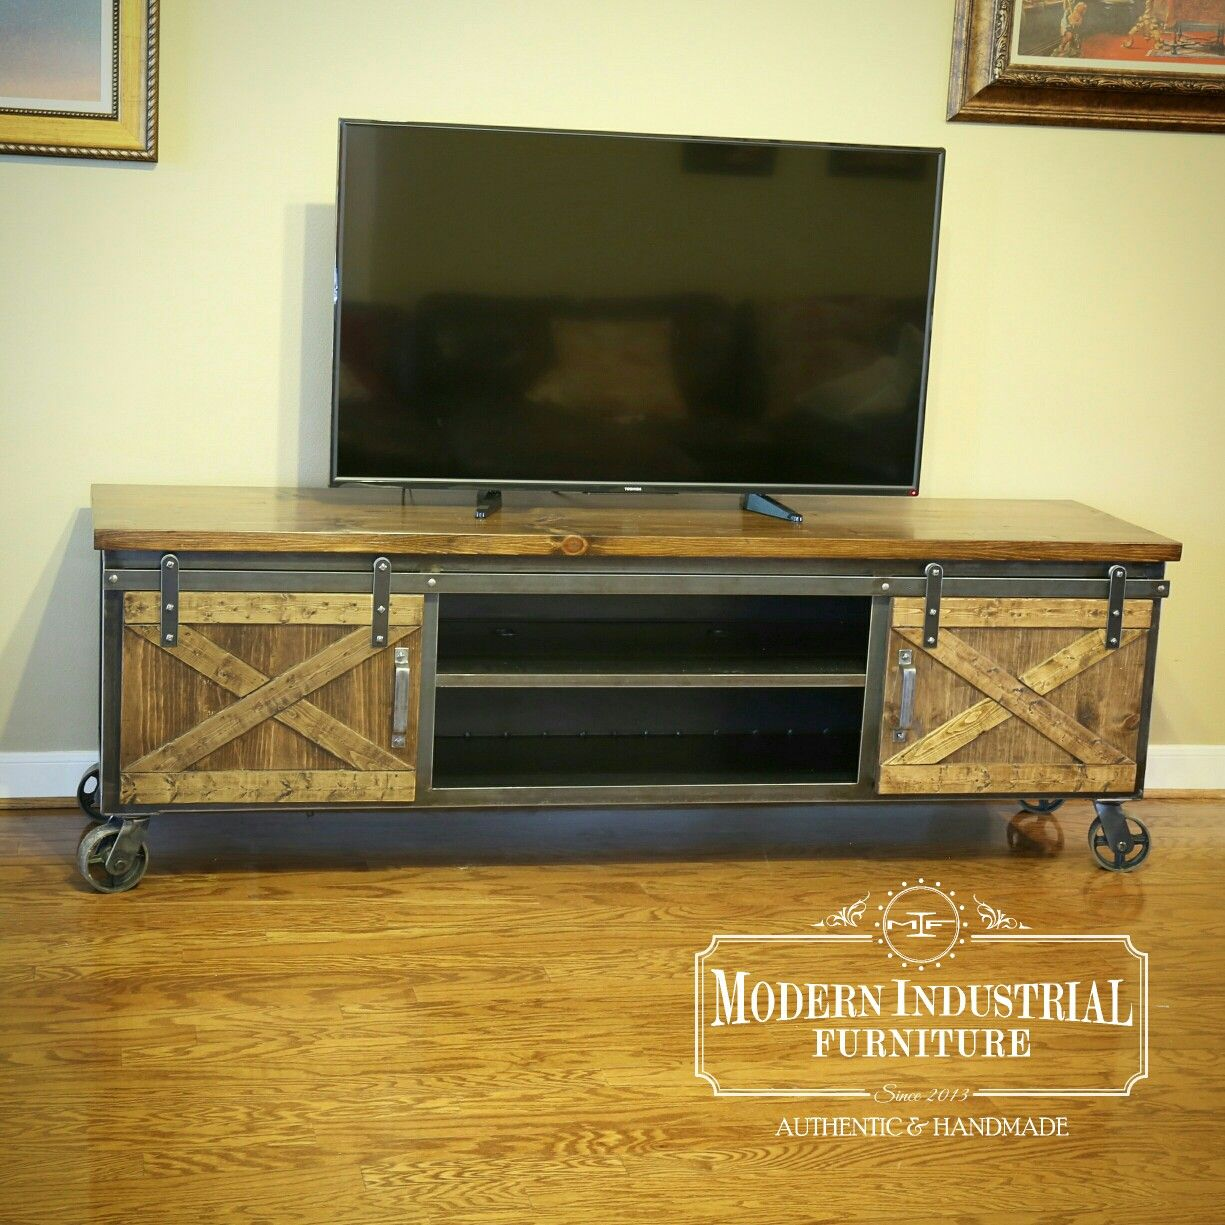 Steel Tv Stand Cabinet With Wooden Barn Door Style Doors Wooden Tv Stands Tv Stand Designs Wall Mounted Tv